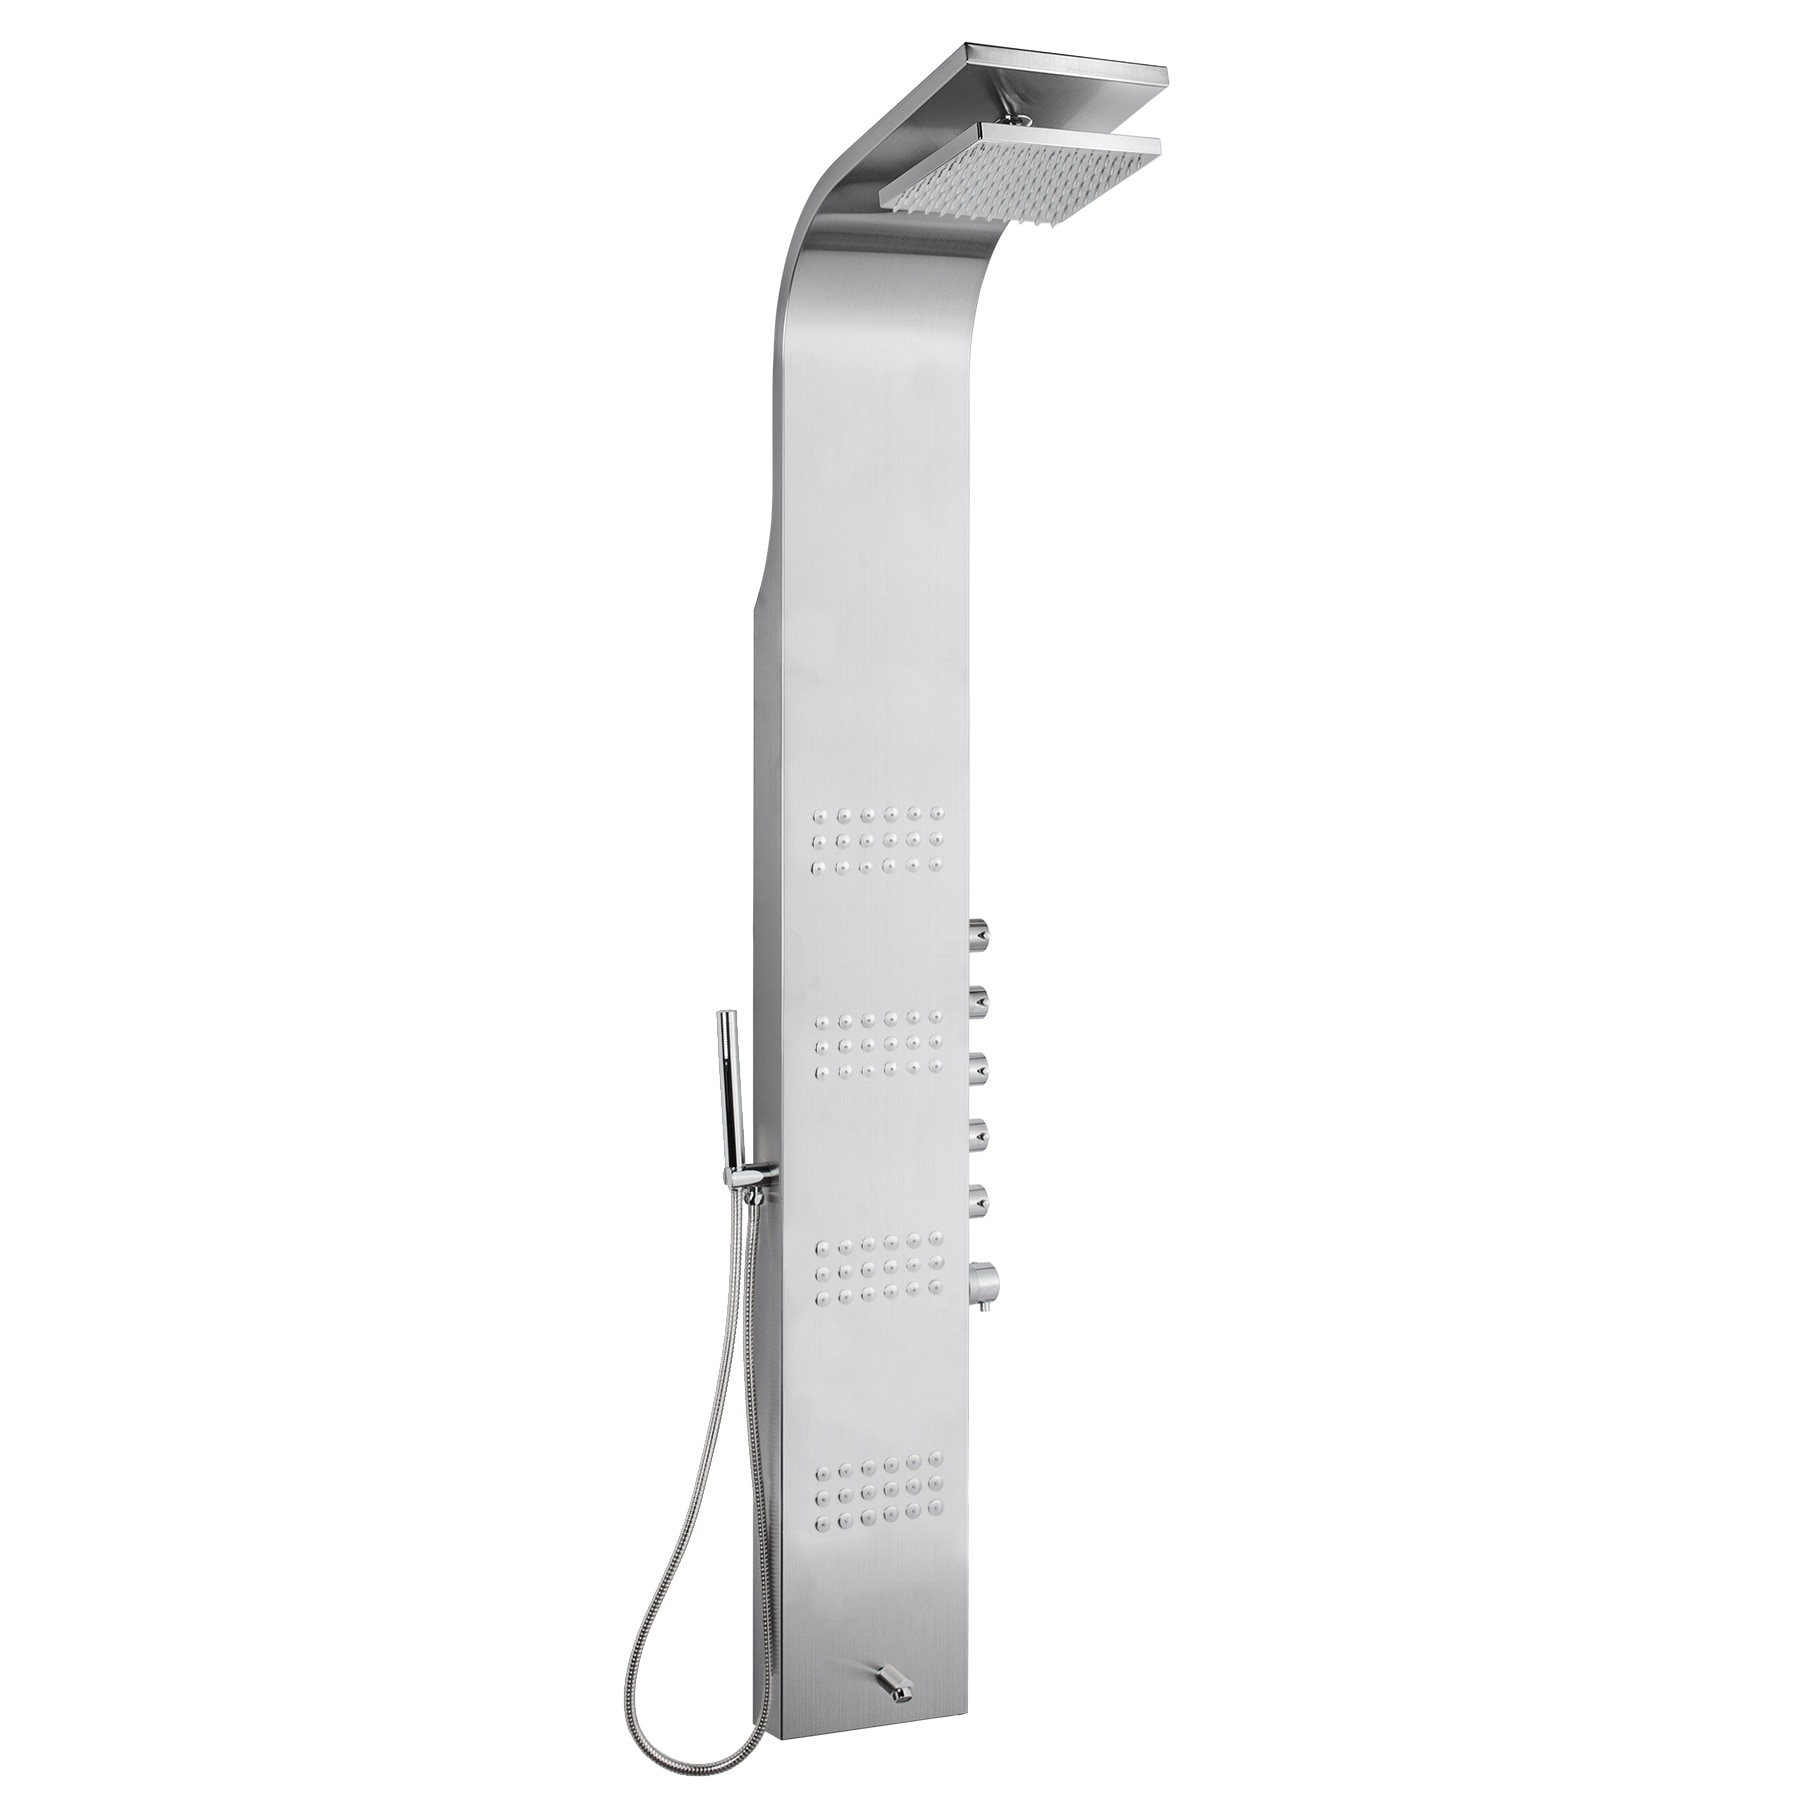 Akdy Sp0013 65 Thermostatic Rainfall Shower Panel Tower Simultaneous Overhead Rainfall Body Massage Jets Hand Shower